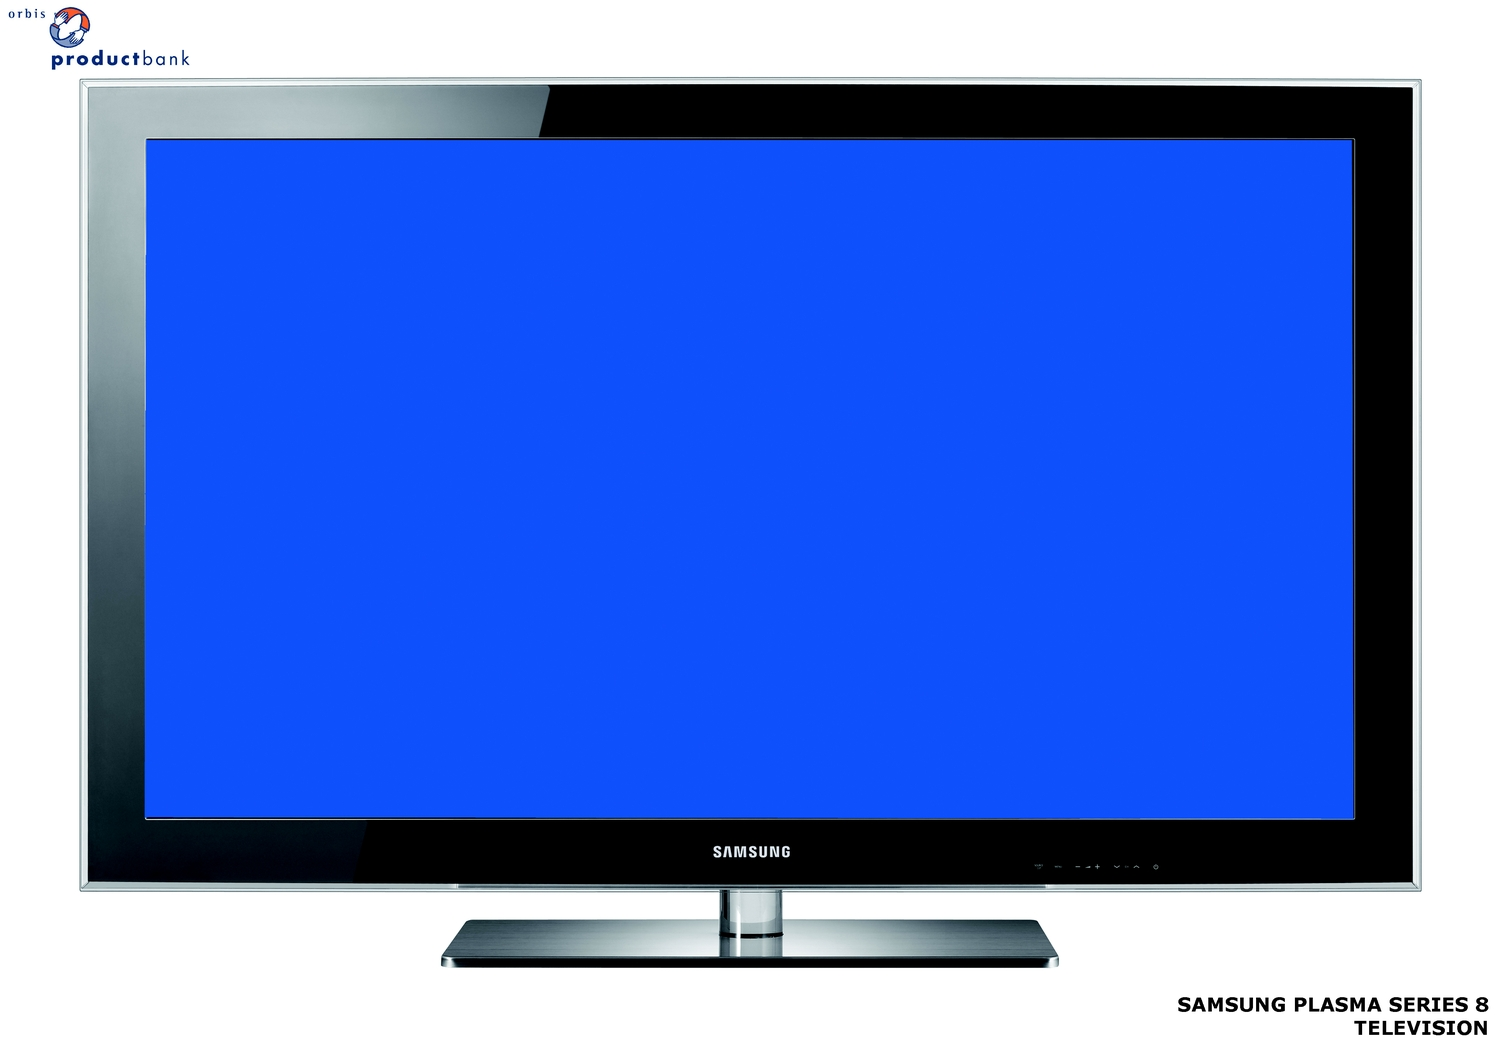 samsung series 8 ps50b850 review a well rounded samsung plasma television with great picture. Black Bedroom Furniture Sets. Home Design Ideas